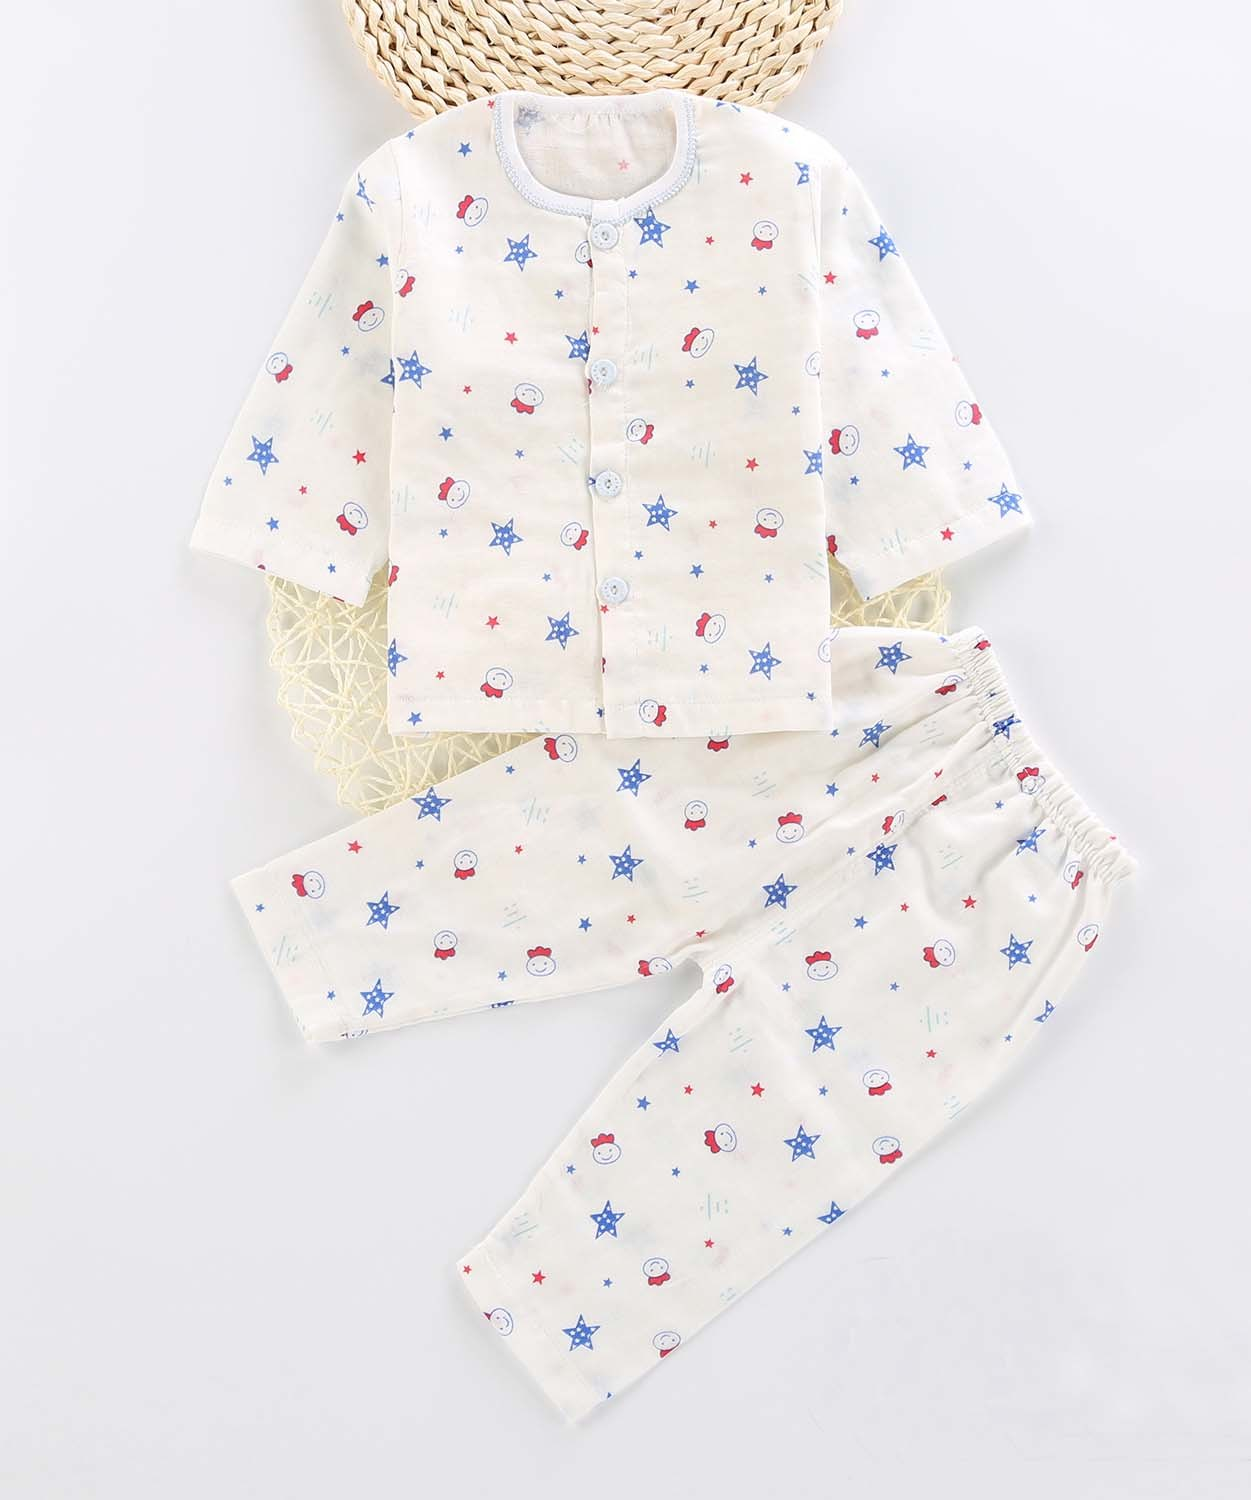 2017 New Fashion Children Apparel Kids Clothing Baby Clothes pictures & photos